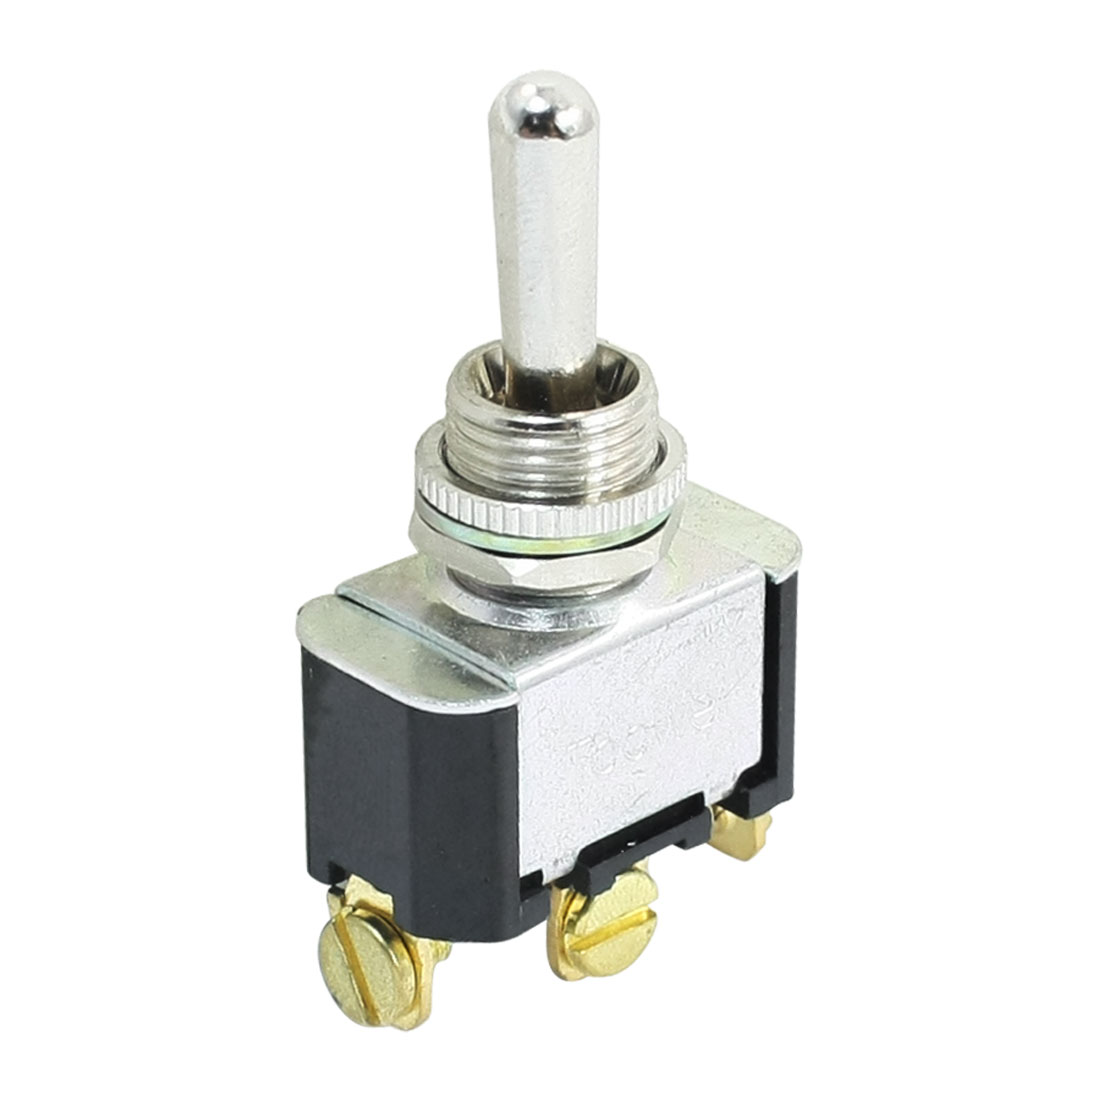 SPDT ON-OFF-ON 3 Screw Terminals Momentary Toggle Switch AC 125V 15A T6015W